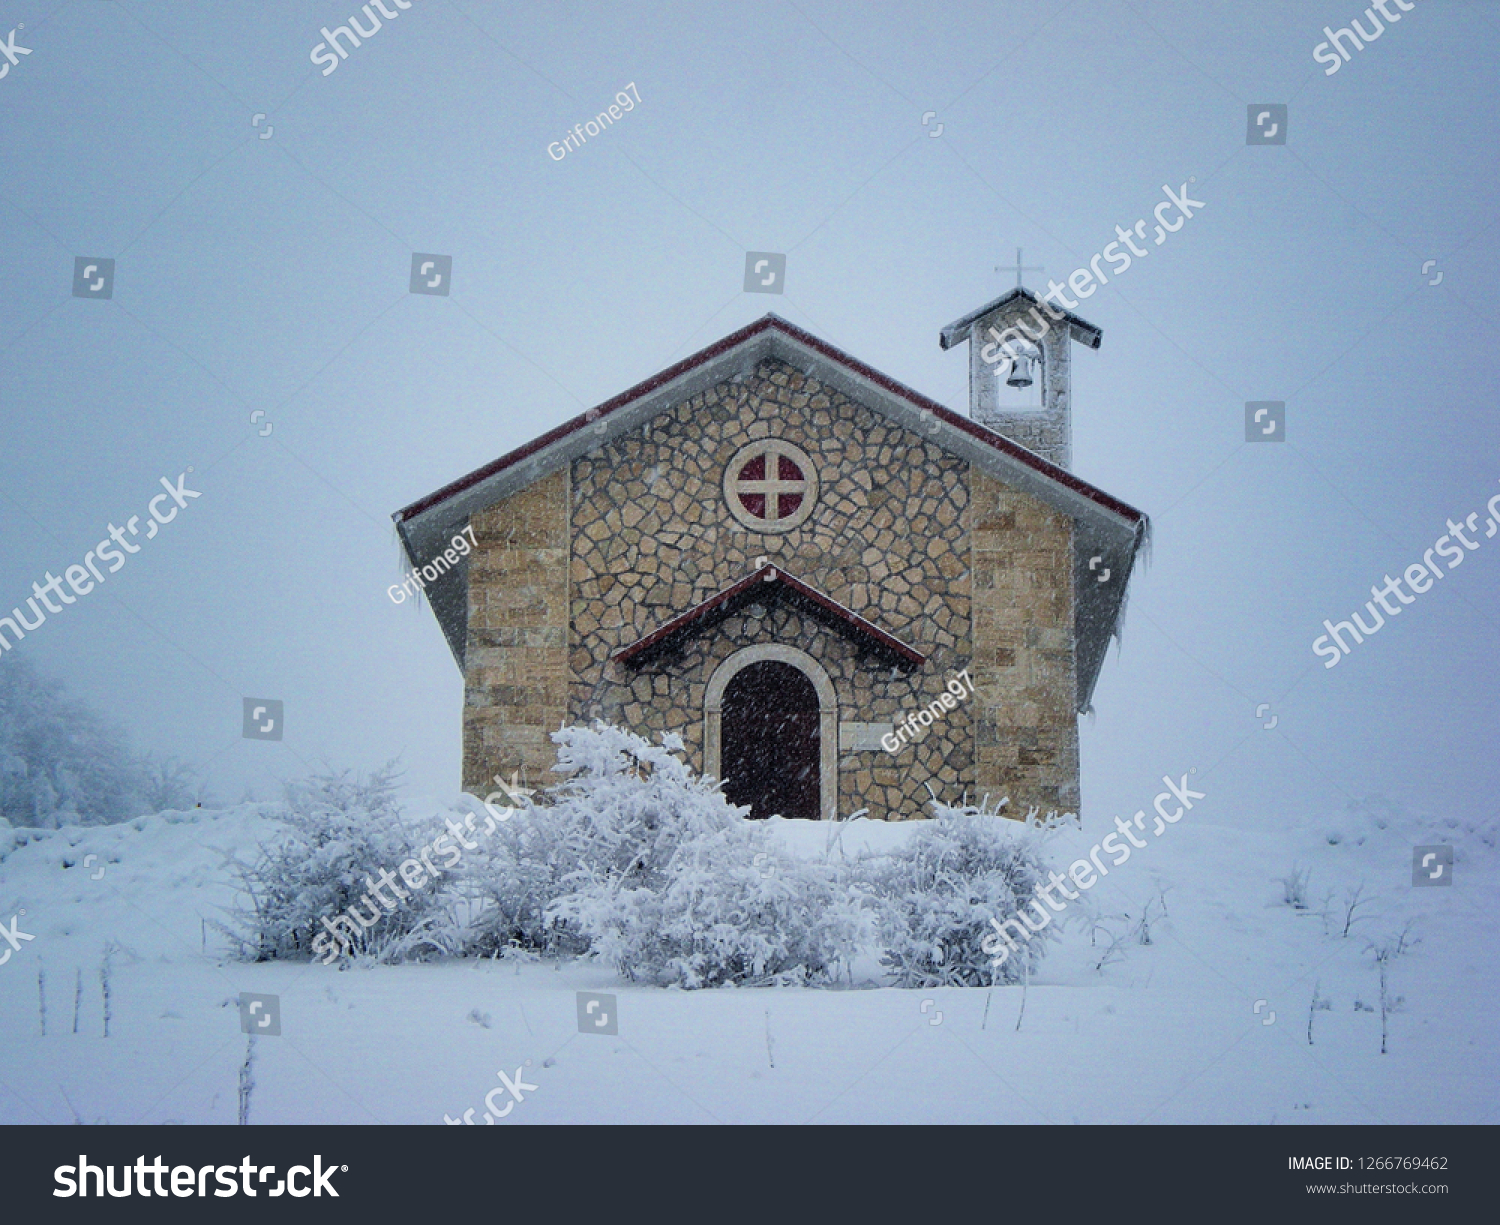 A Church in the snow; Forca Canapine, Marche. (The picture was made before the earthquake of 2016).